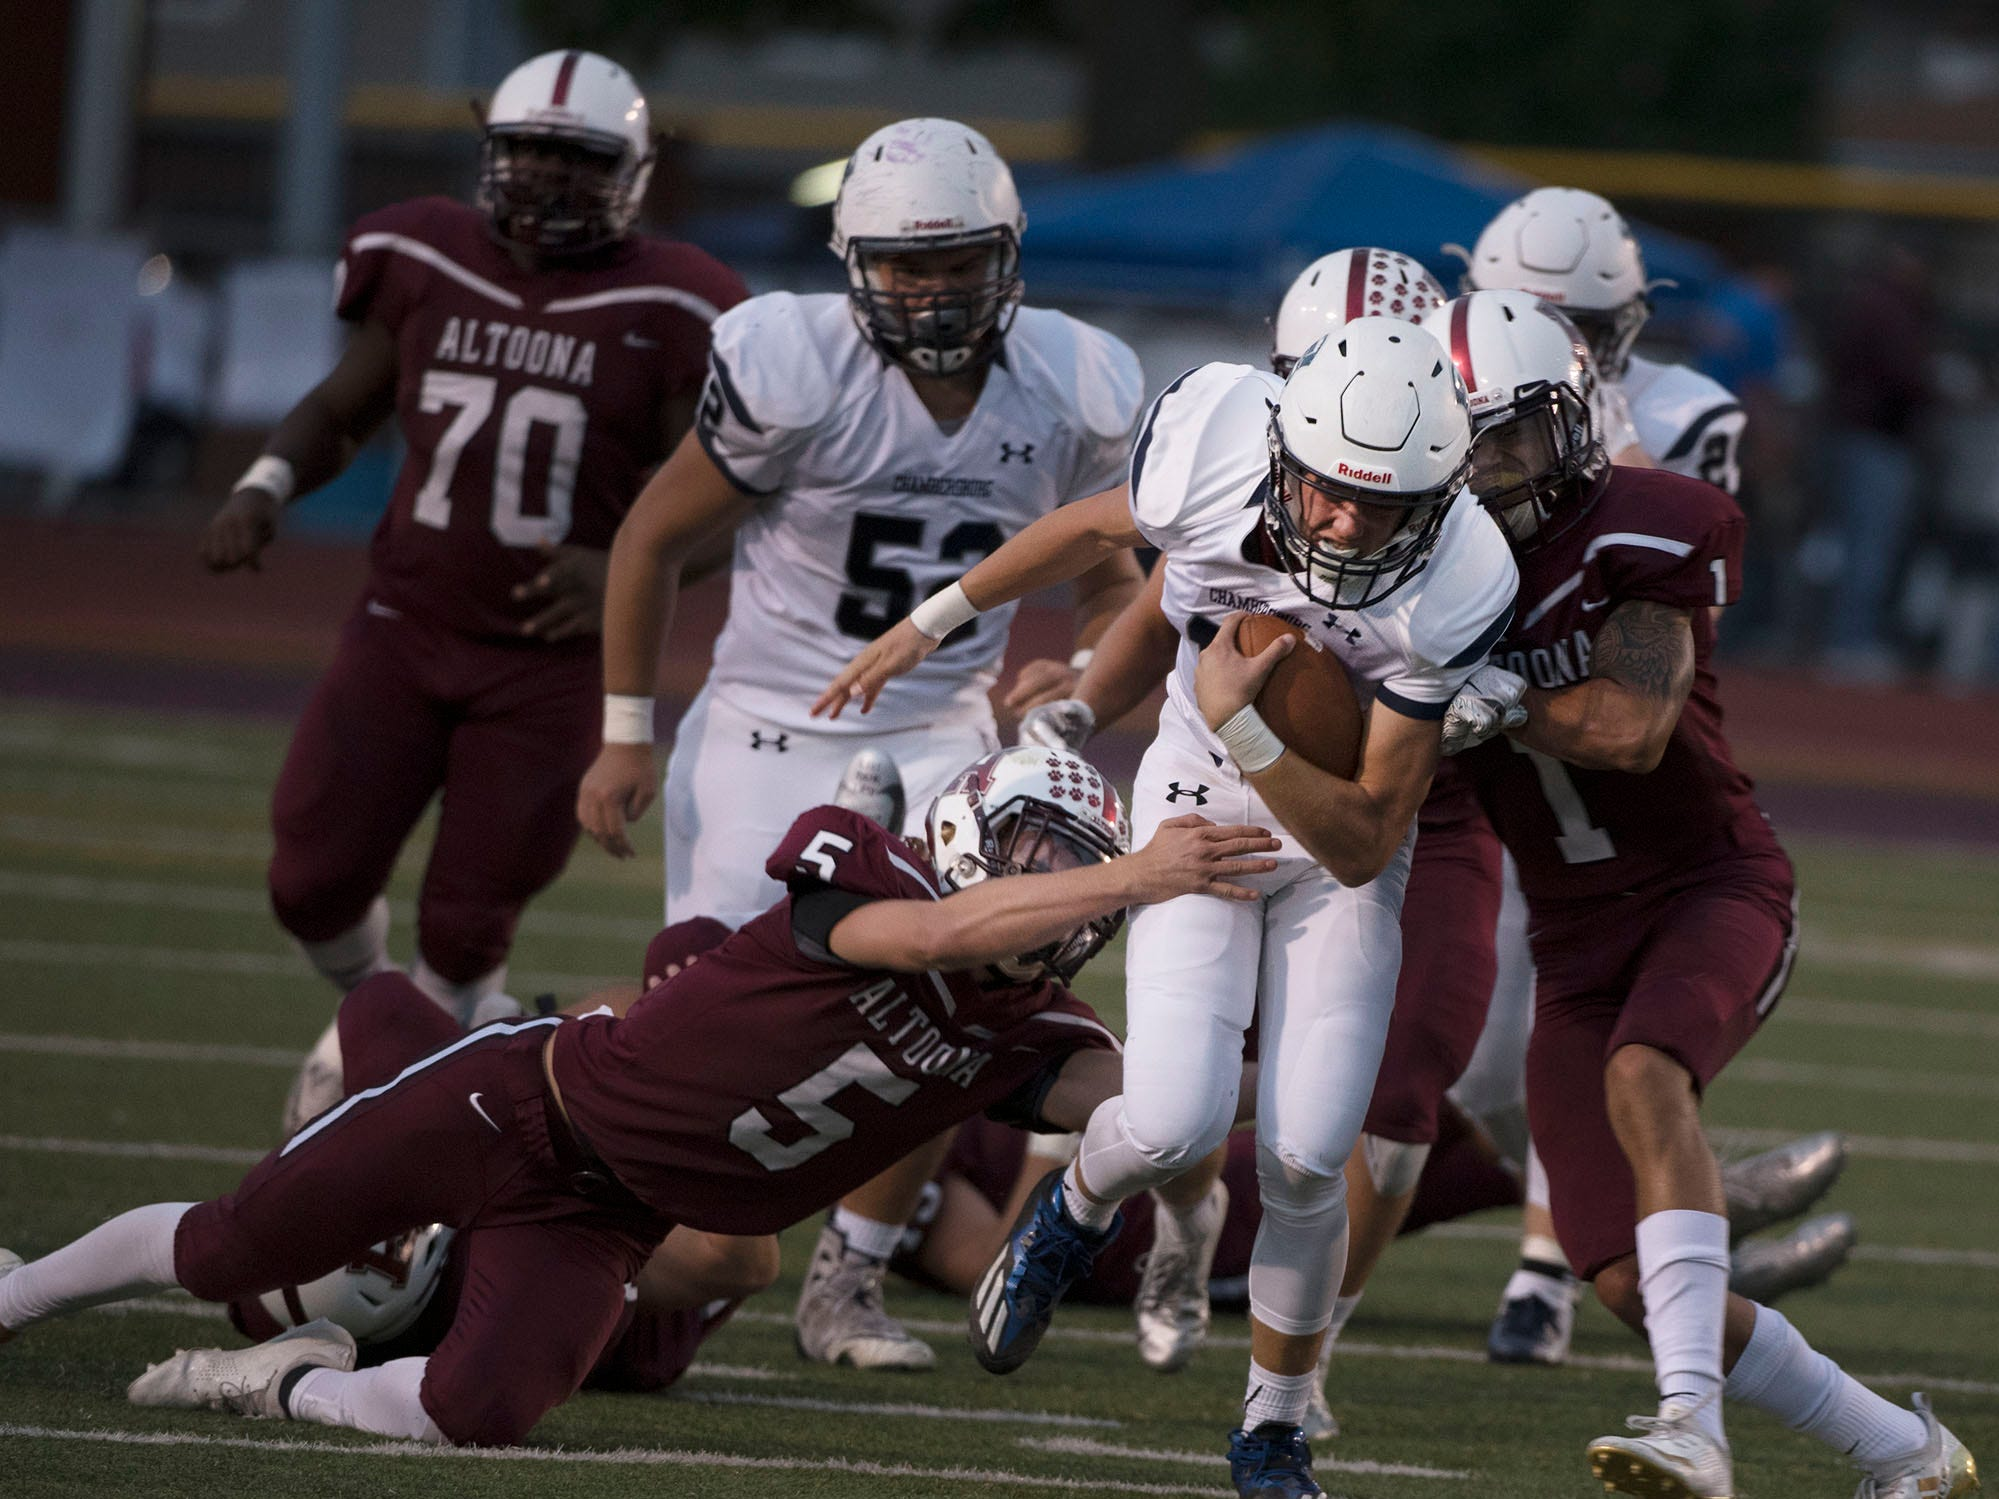 Chambersburg QB Brady Stumbaugh runs for a first down. Chambersburg defeated Altoona 48-28 in PIAA football to move to 4-0 on Friday, Sept. 14, 2018.